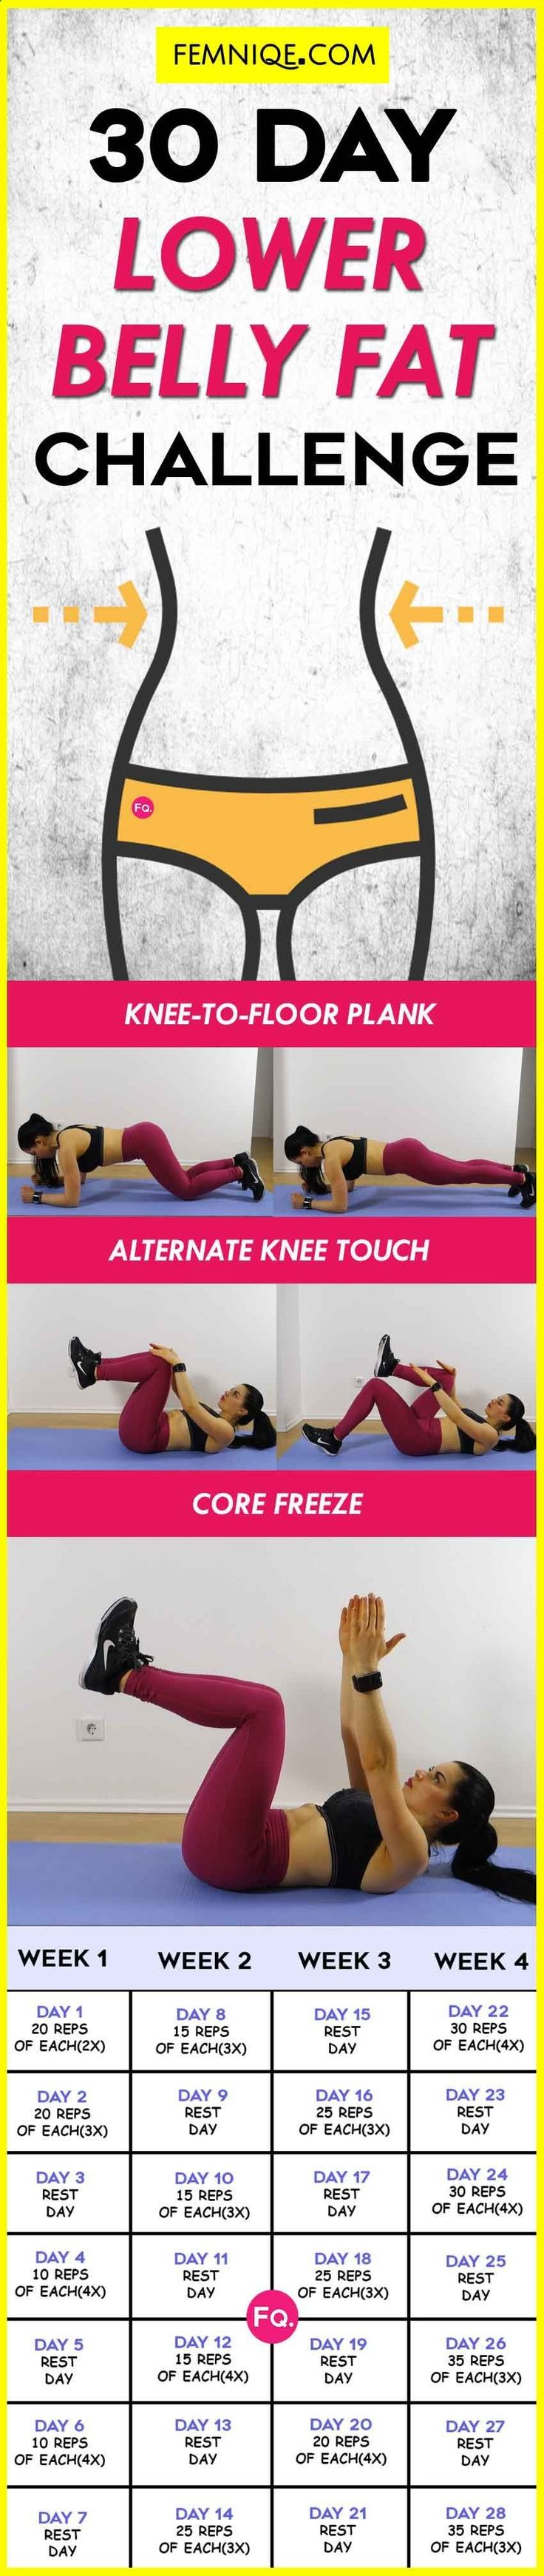 Belly Fat Workout - LOWER BELLY FAT CHALLENGE Do This One Unusual 10-Minute Trick Before Work To Melt Away 15+ Pounds of Belly Fat